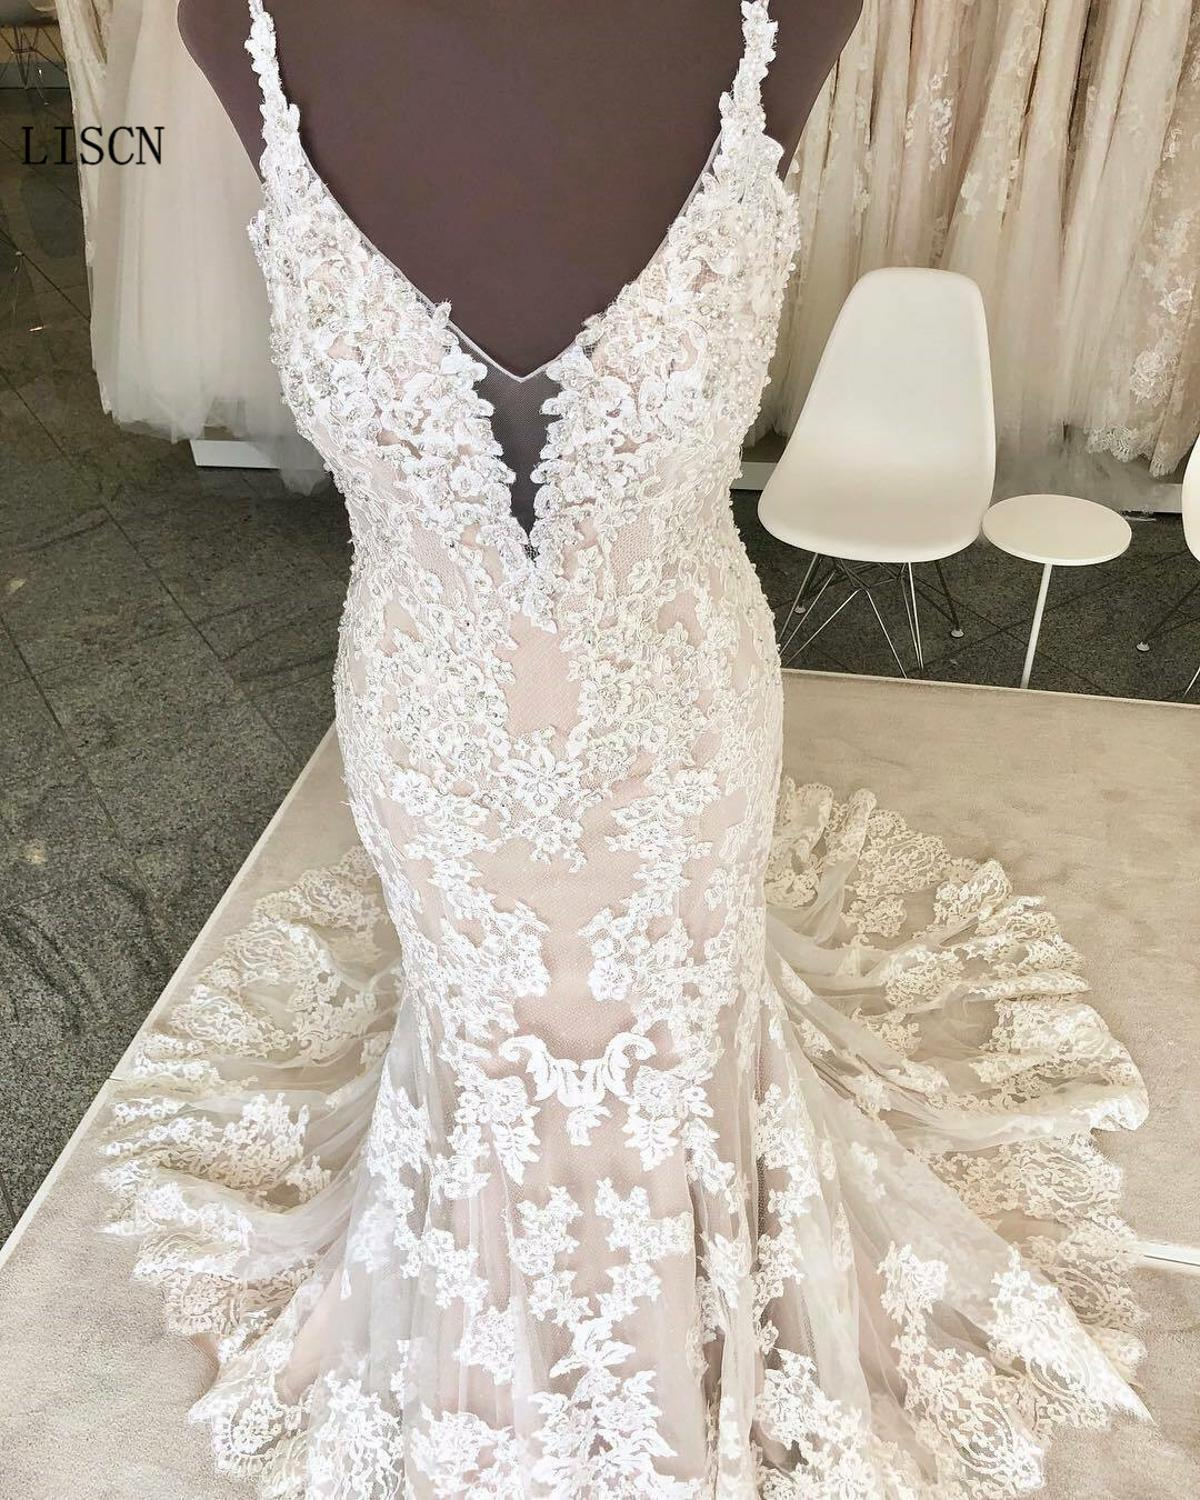 Spaghetti Straps Backless White Lace Deep V-neck Wedding Dress Mermaid Princess Bridal Gowns Appliques Custom Vestido De Noiva